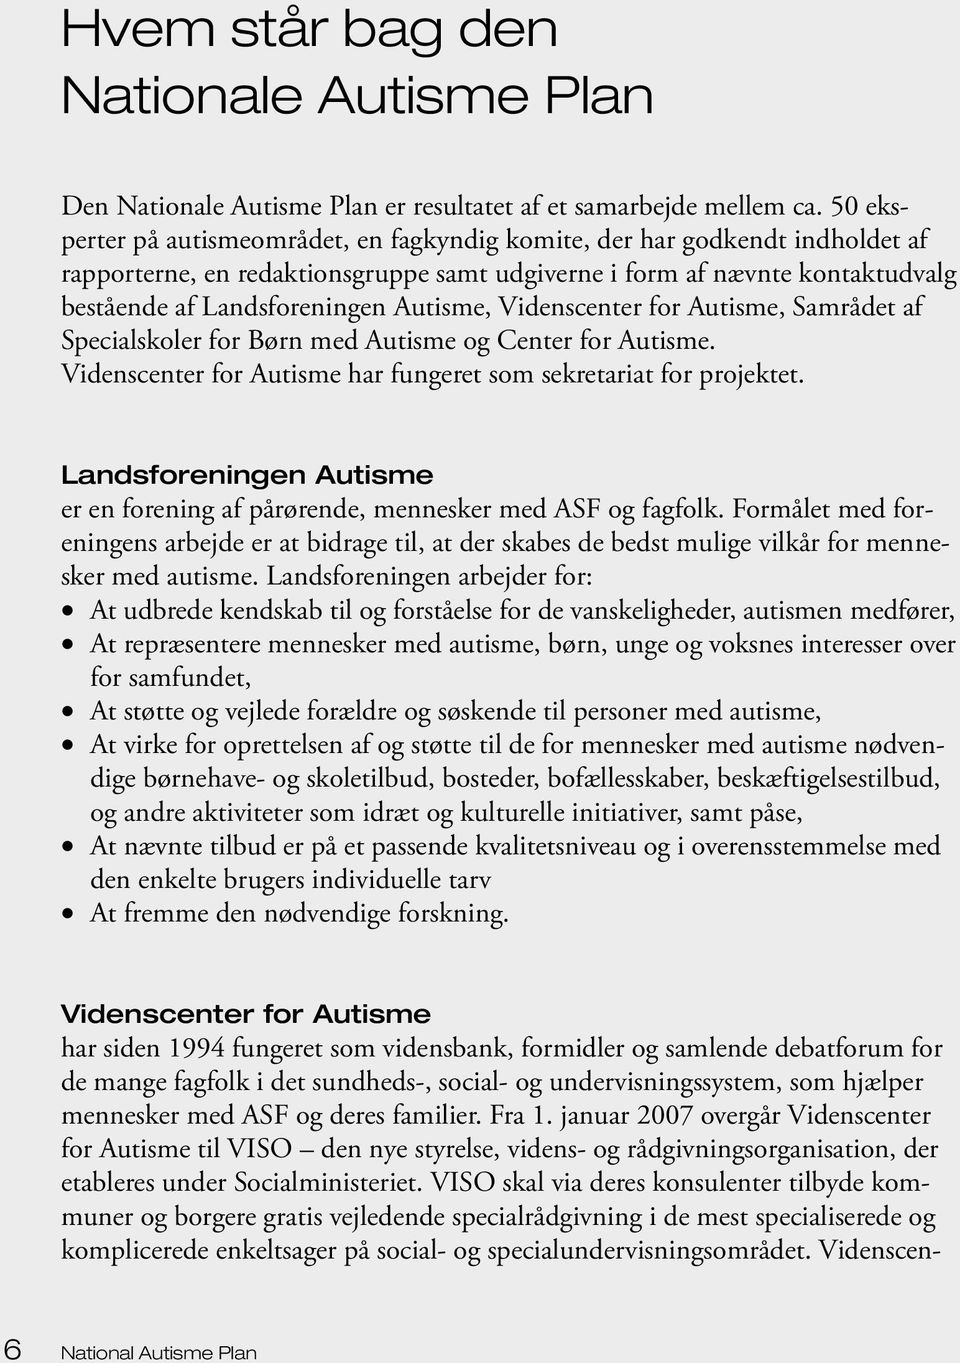 Videnscenter for Autisme, Samrådet af Specialskoler for Børn med Autisme og Center for Autisme. Videnscenter for Autisme har fungeret som sekretariat for projektet.